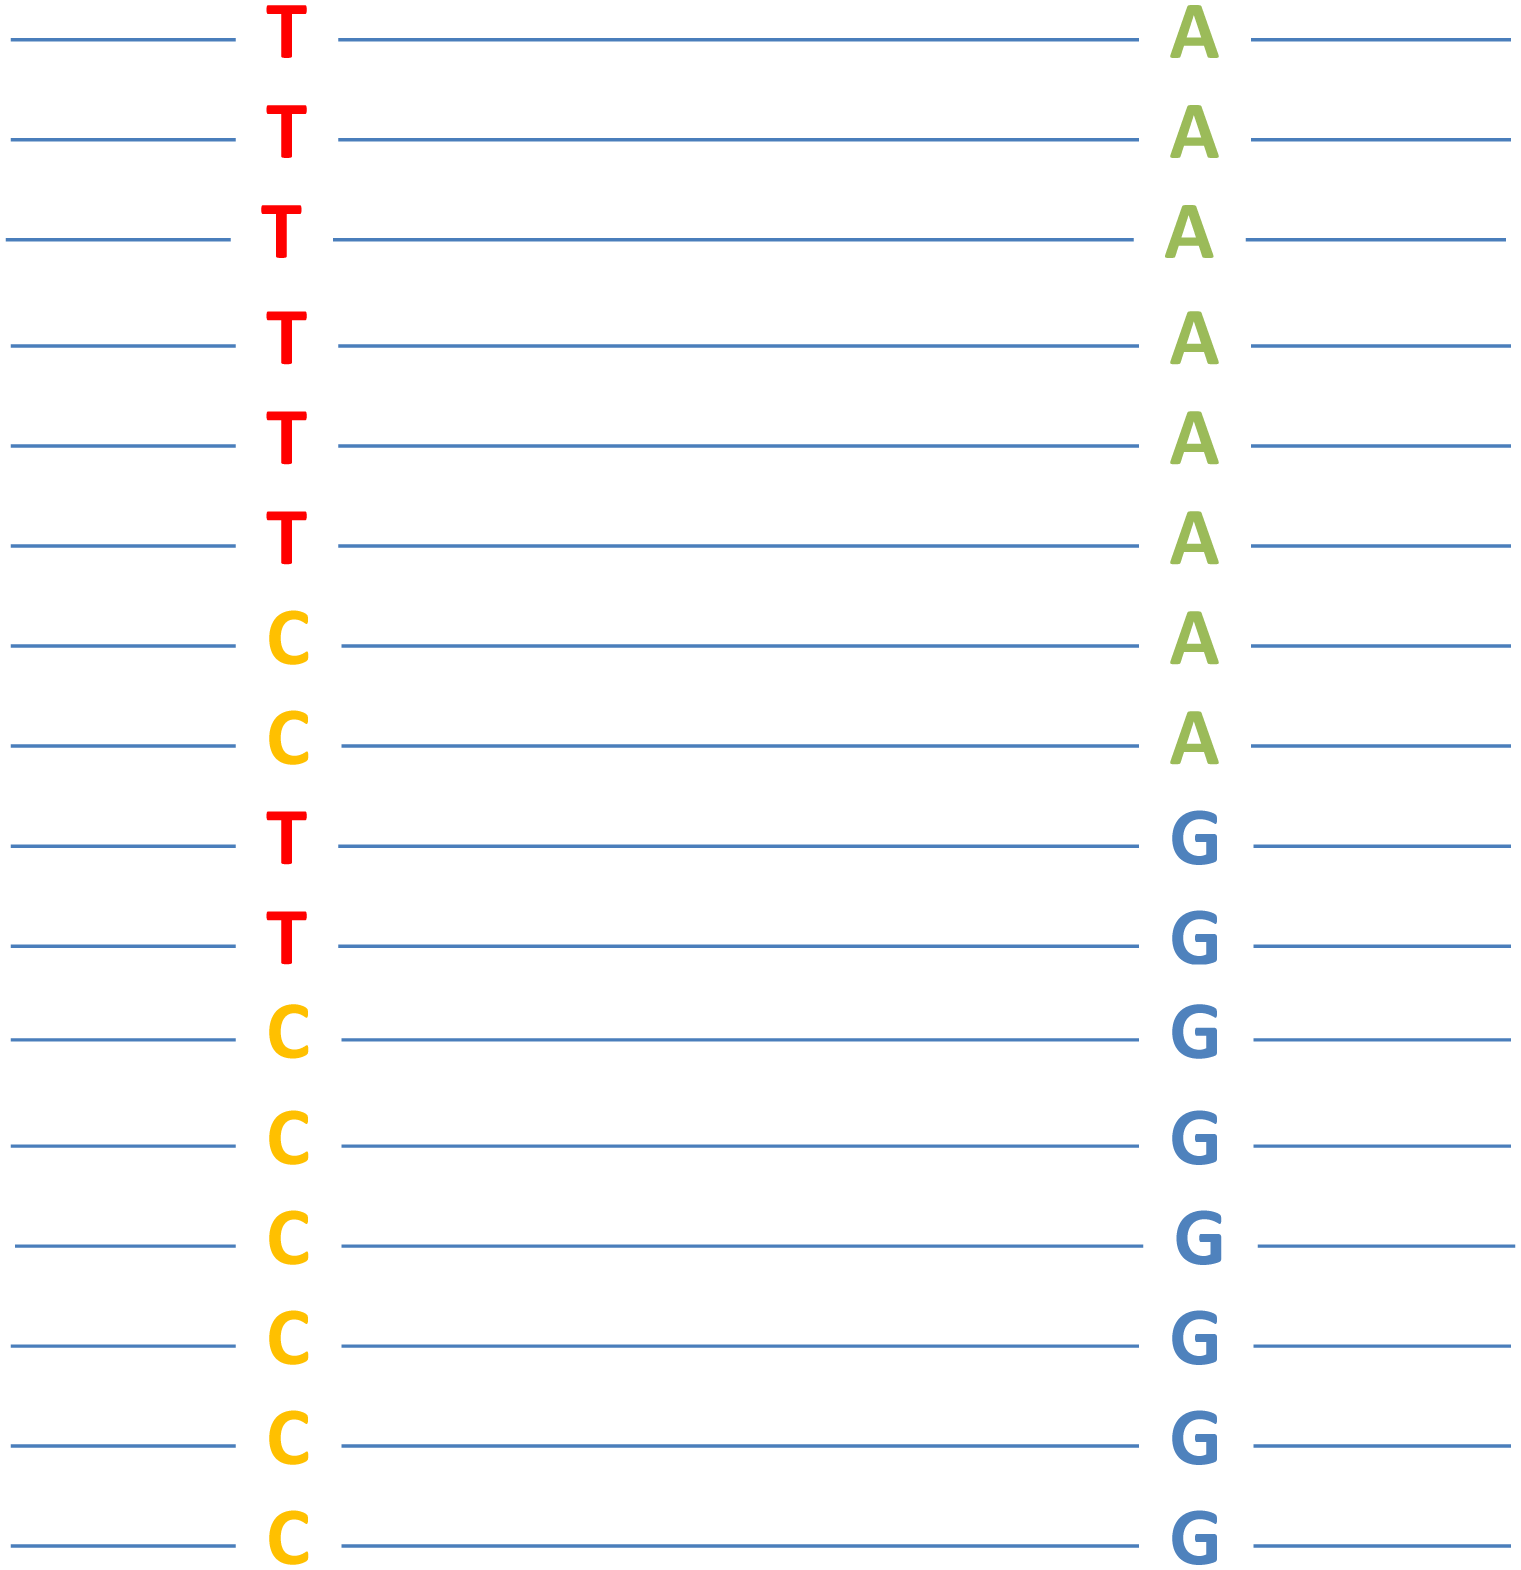 A hypothetical example of epistasis between two nucleotide sites that is detectable by genomeDCA.